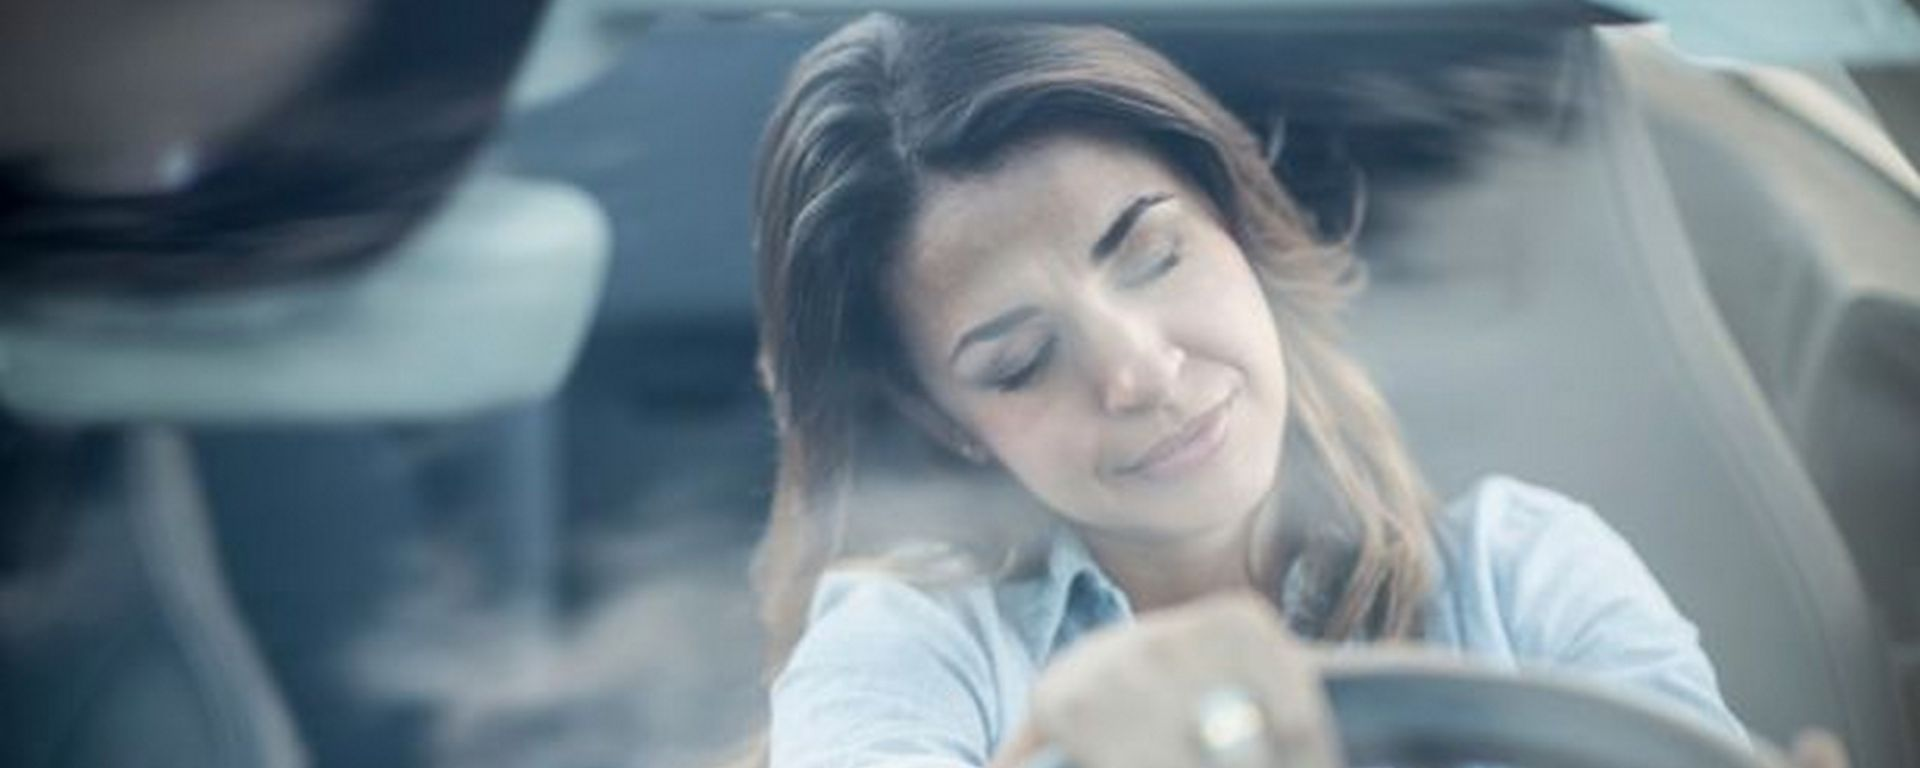 Ford World Sleep Day: controllo disturbi del sonno e guida sicura